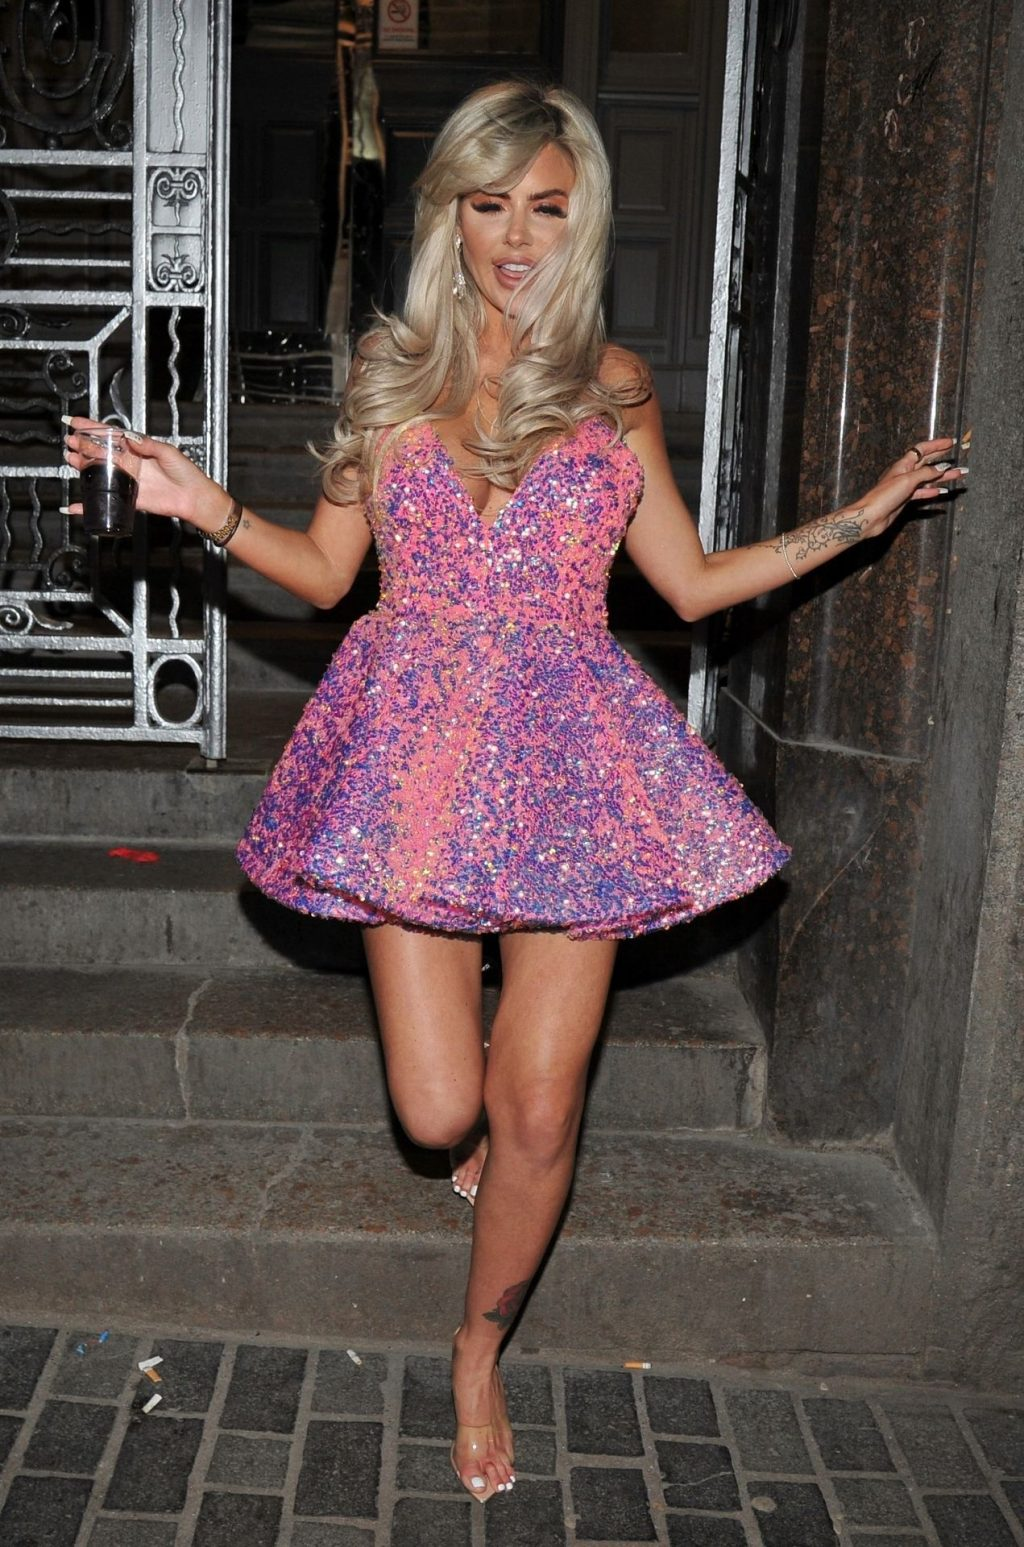 Hannah Elizabeth Spotted Out in Liverpool (11 Photos)